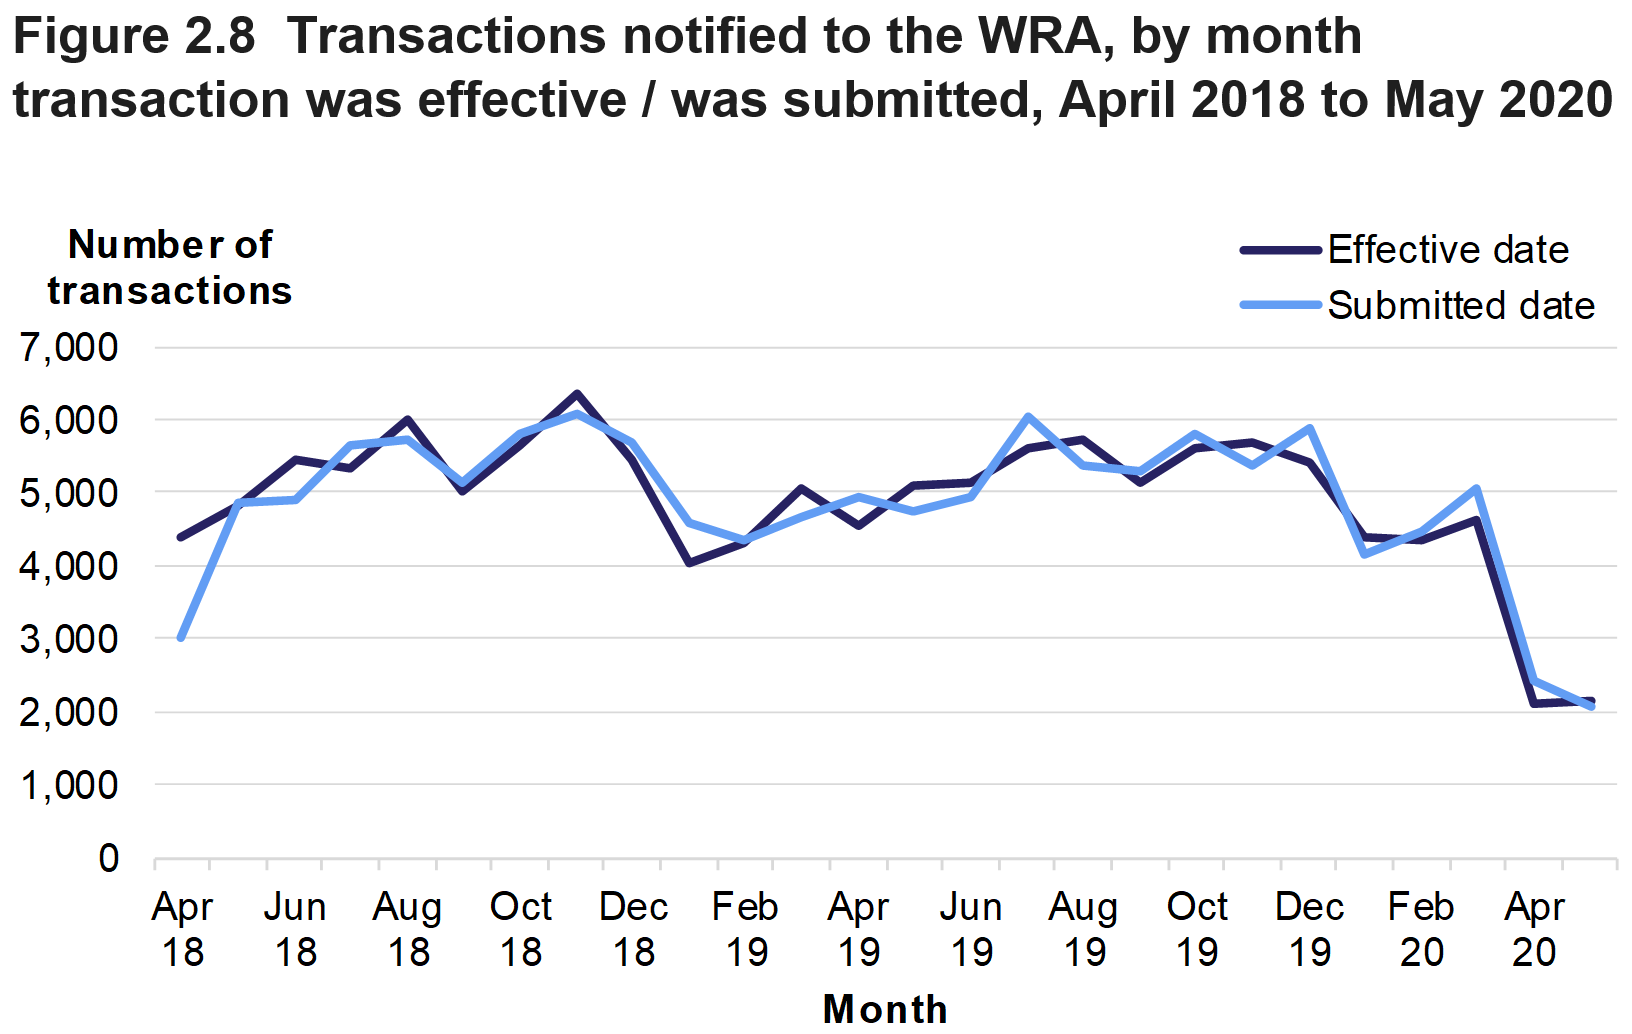 Figure 2.8 shows the monthly numbers of transactions which became effective and which were submitted, from April 2018 to May 2020.